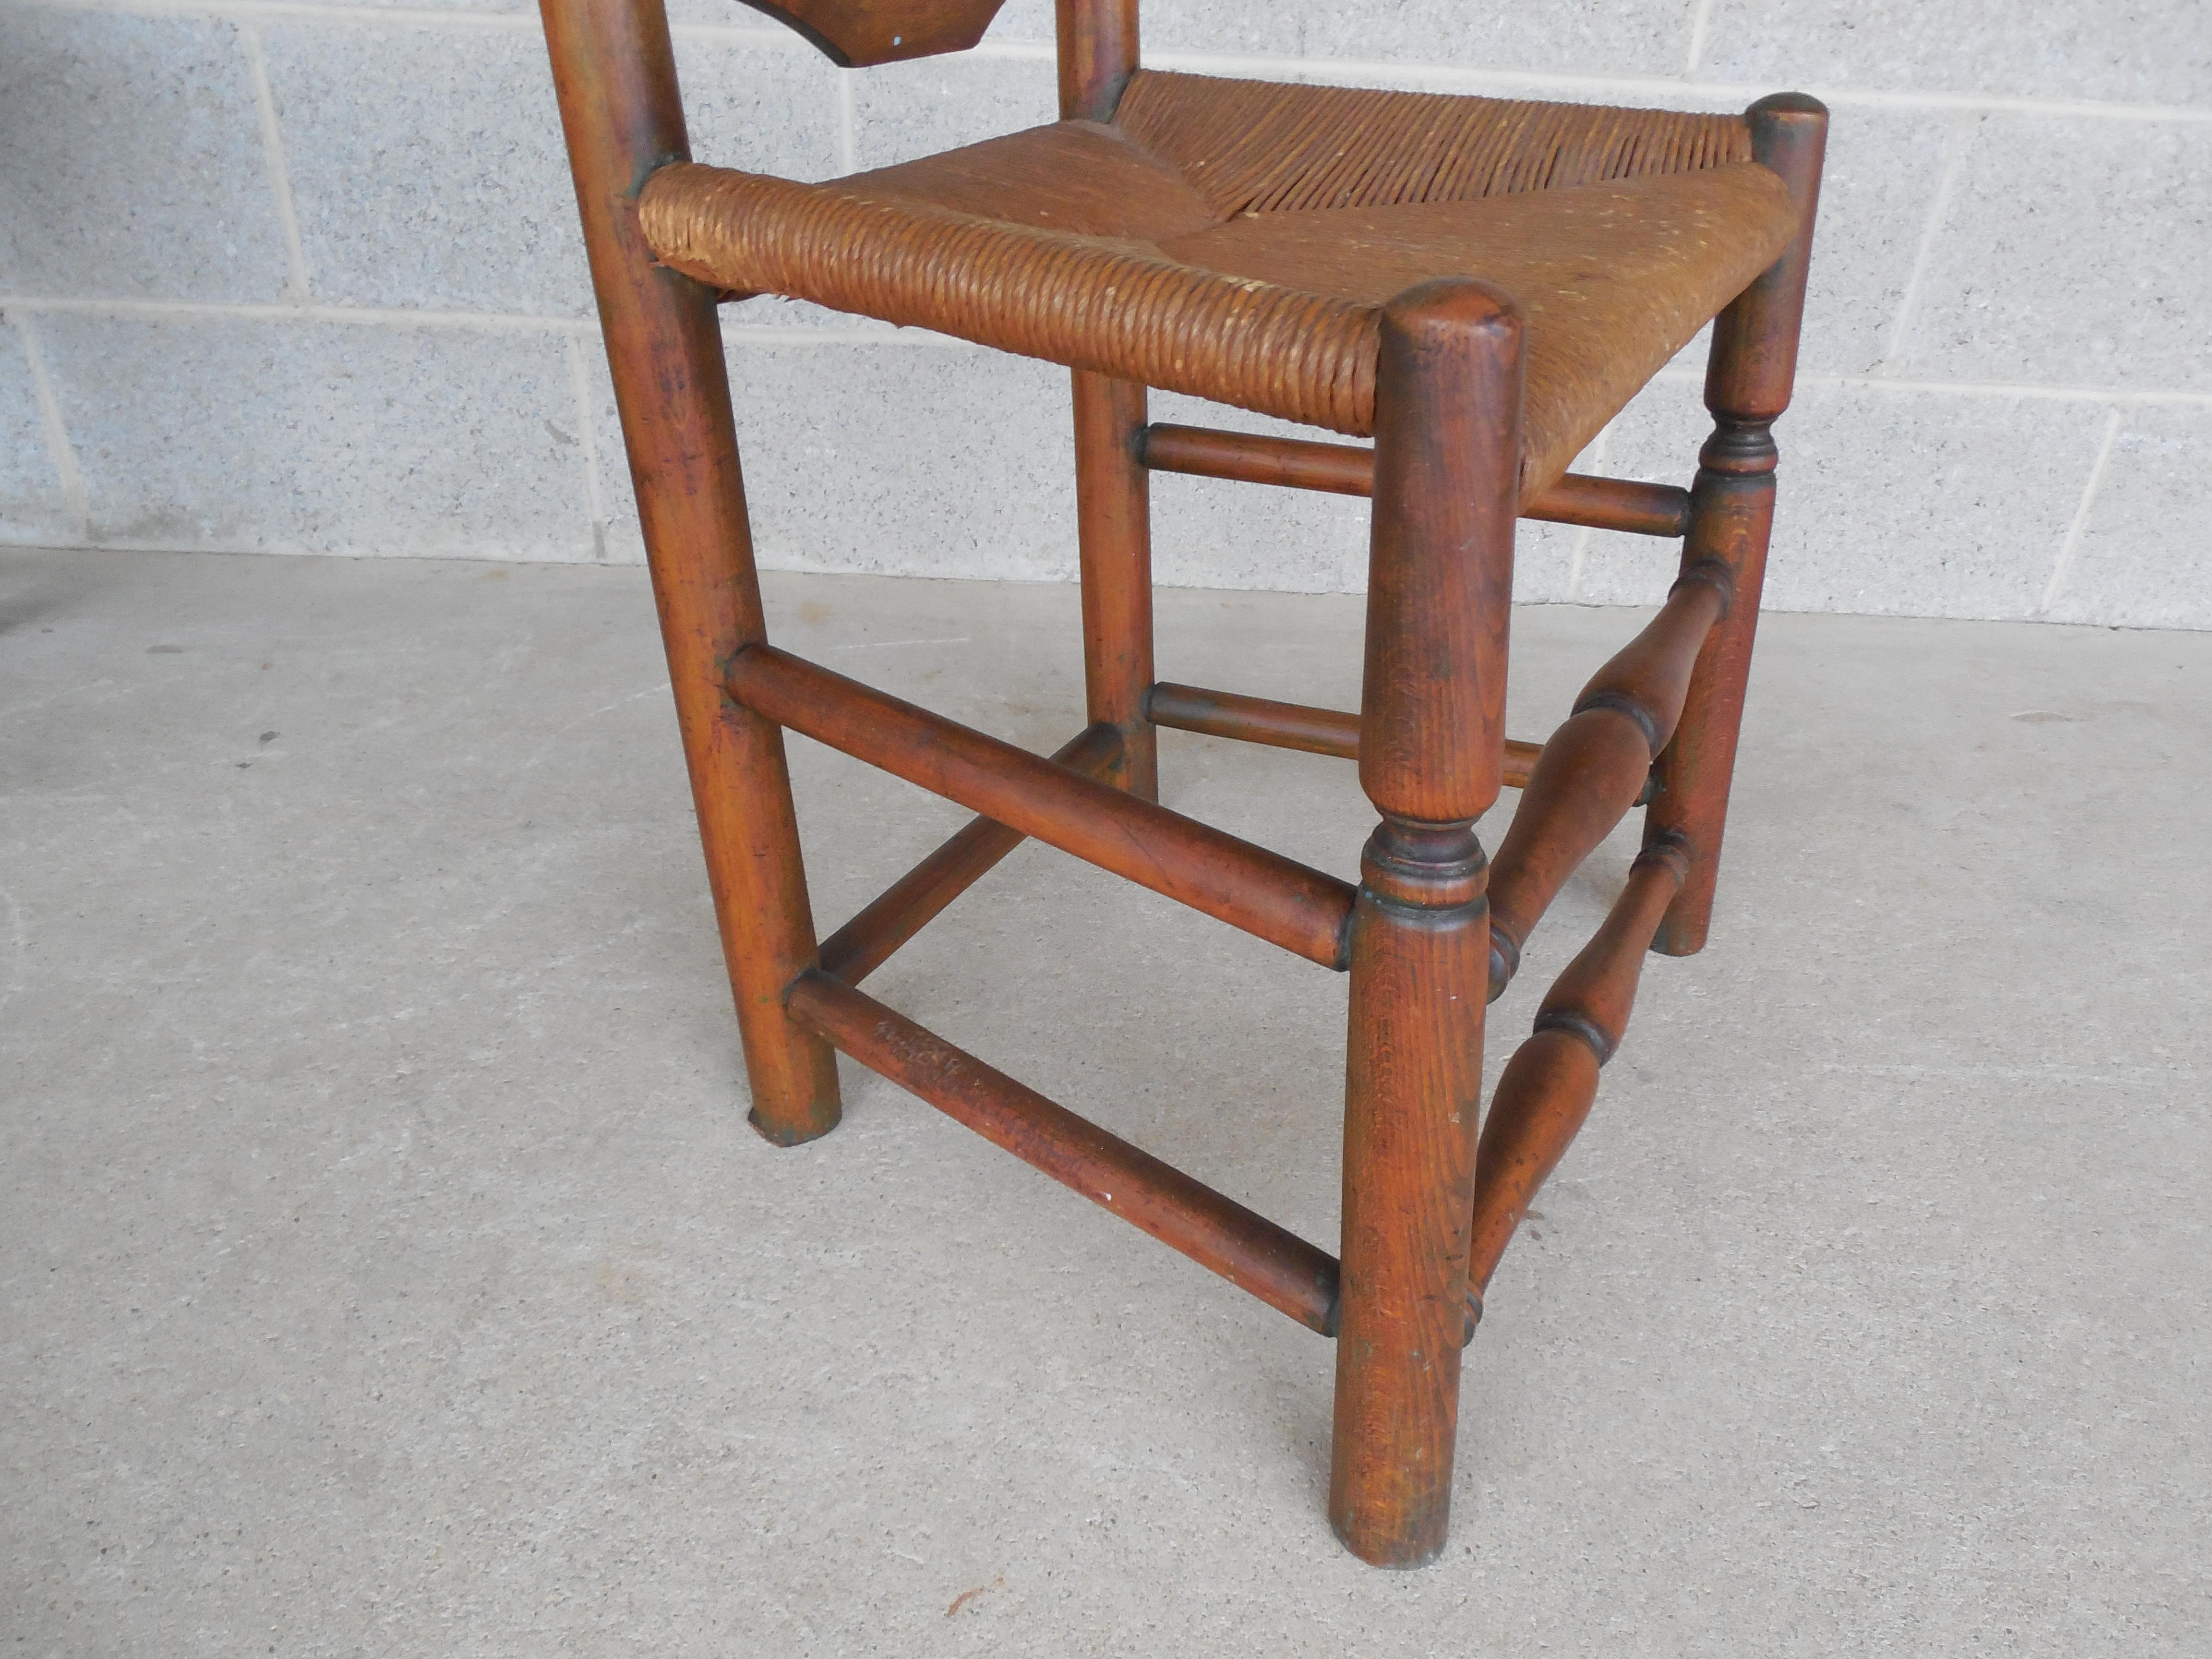 Ordinaire Set Of 6 Antique Turned Windsor Rush Bottom Chairs   Image 7 Of 12